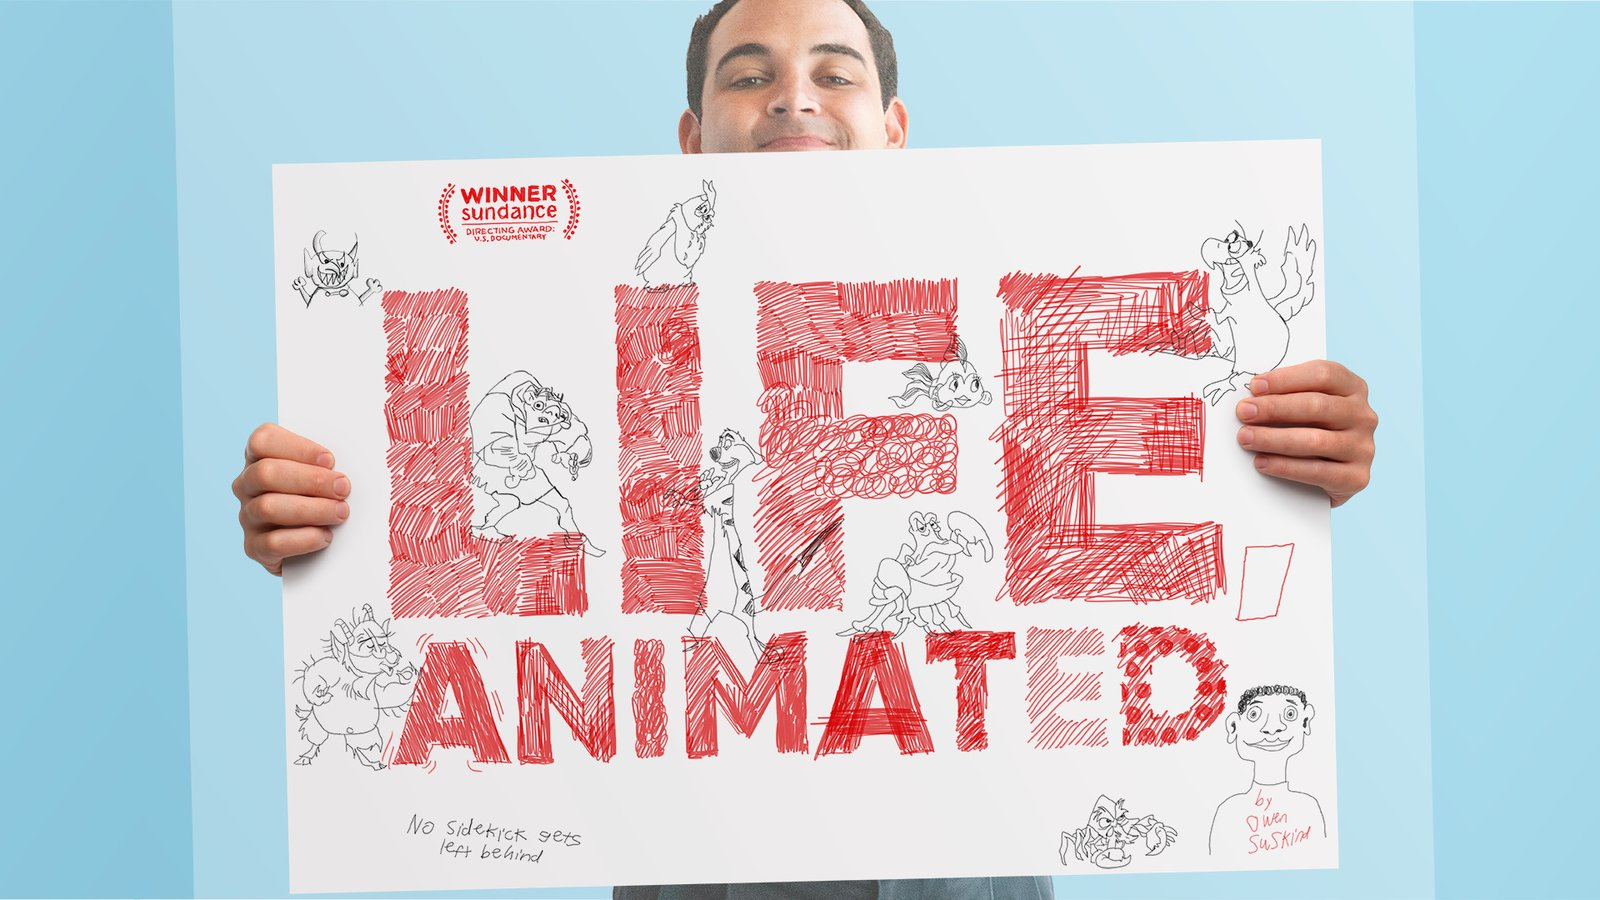 Life, Animated - An Young Autistic Man Finds His Voice Though Disney Films